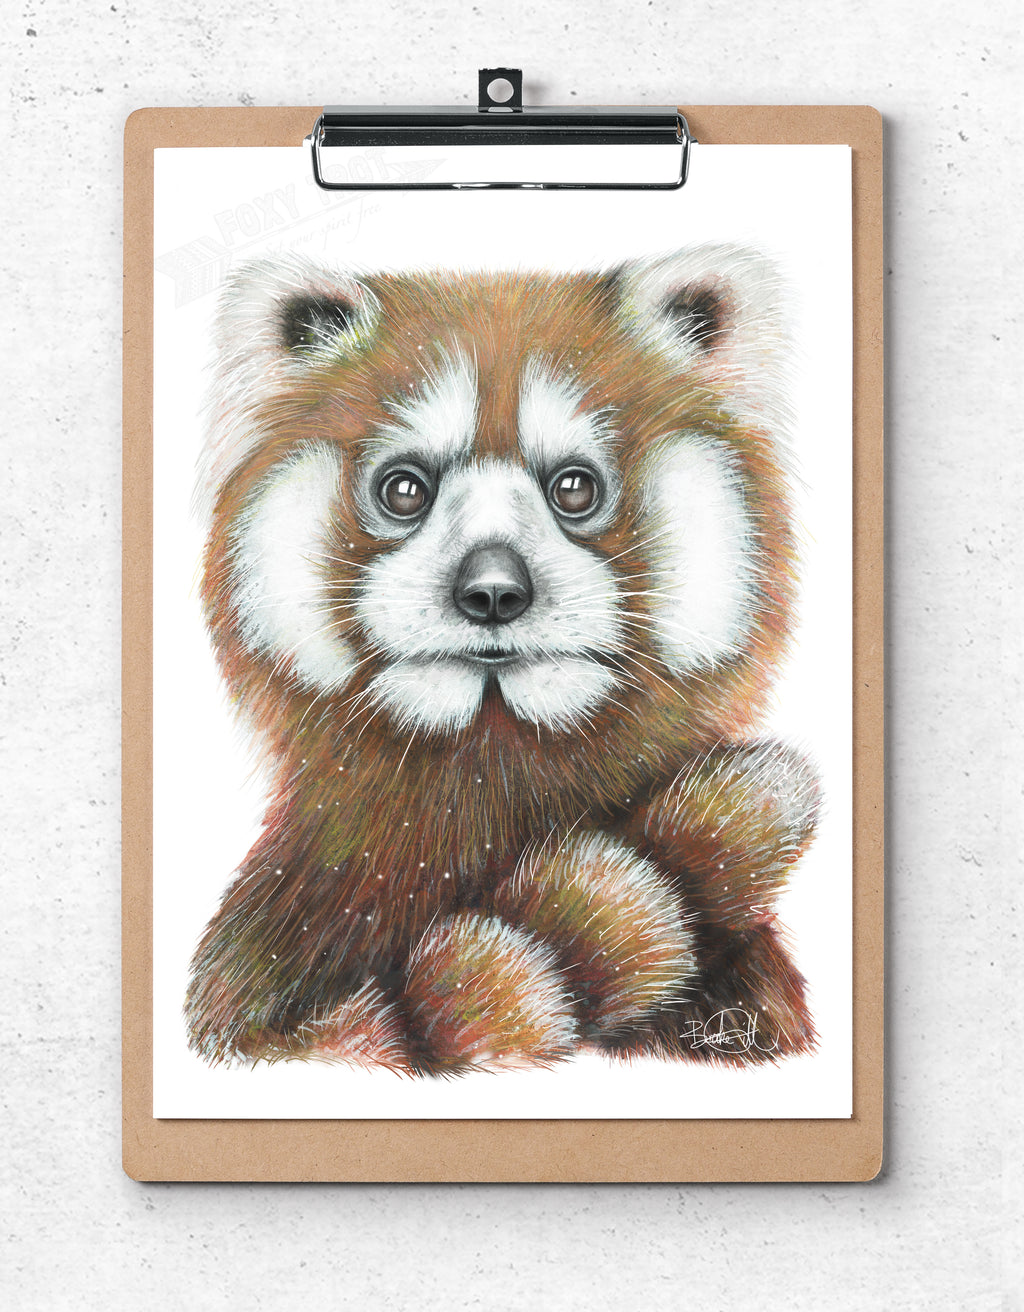 Mr Red the Red Panda